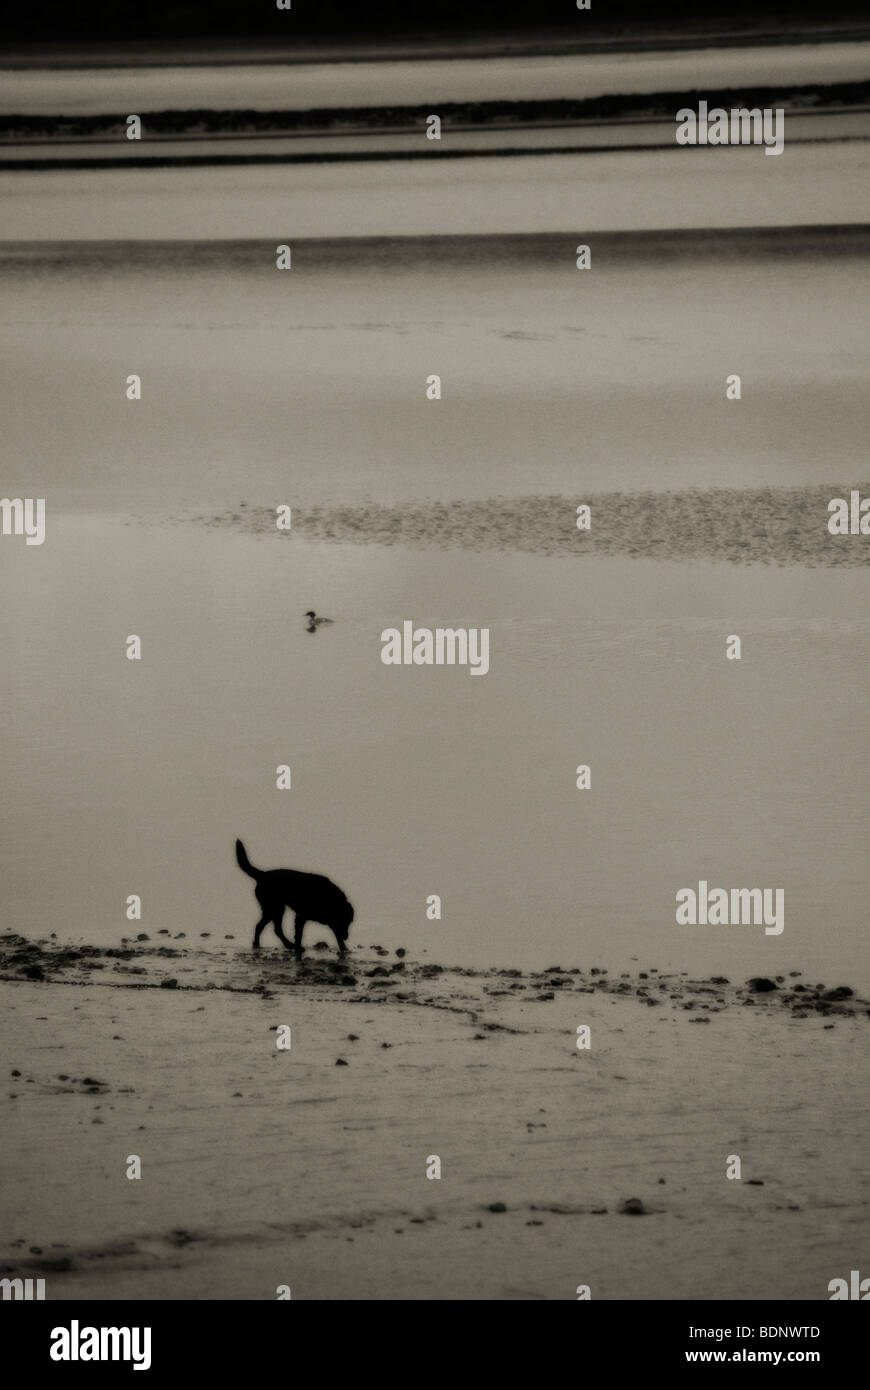 dog on beach - Stock Image